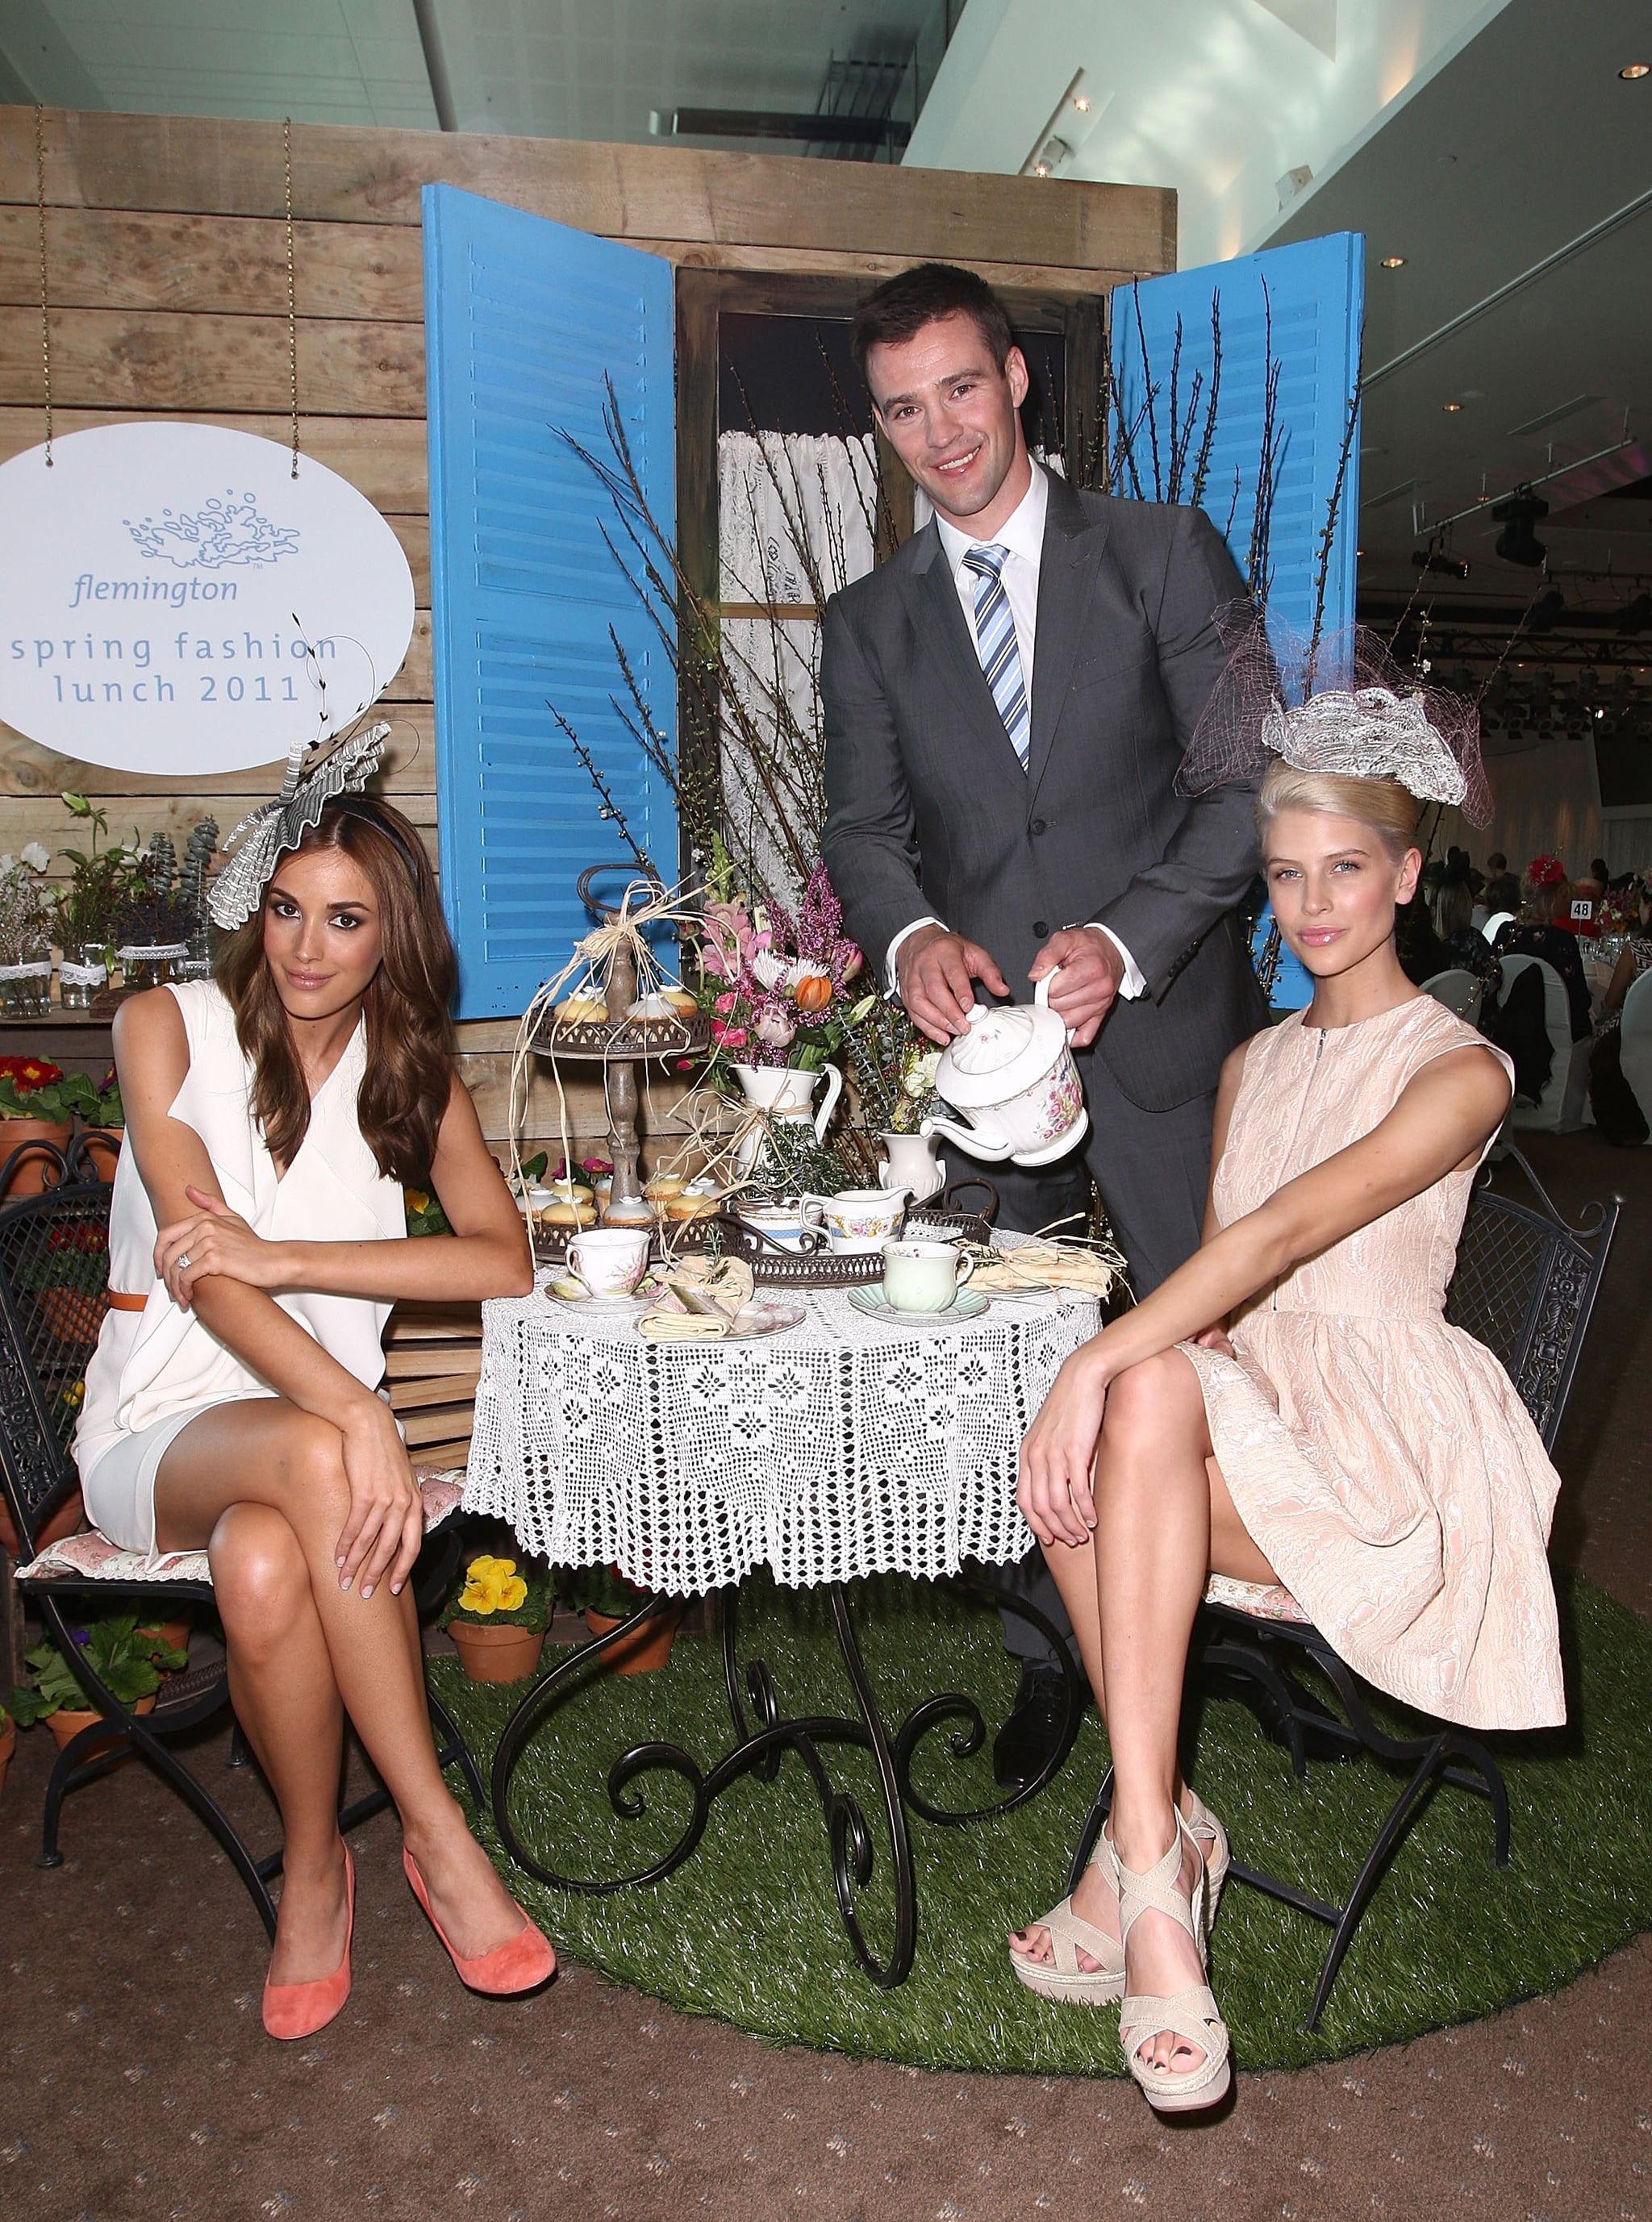 2010 03 01 archive in addition Myfavorites as well Laser Cut Fabric 2 additionally Galleryb in addition Rebecca Judd Post Baby Body Pictures Myer Flemington Spring Racing Lunch Kris Smith 18941187. on van oscar myer